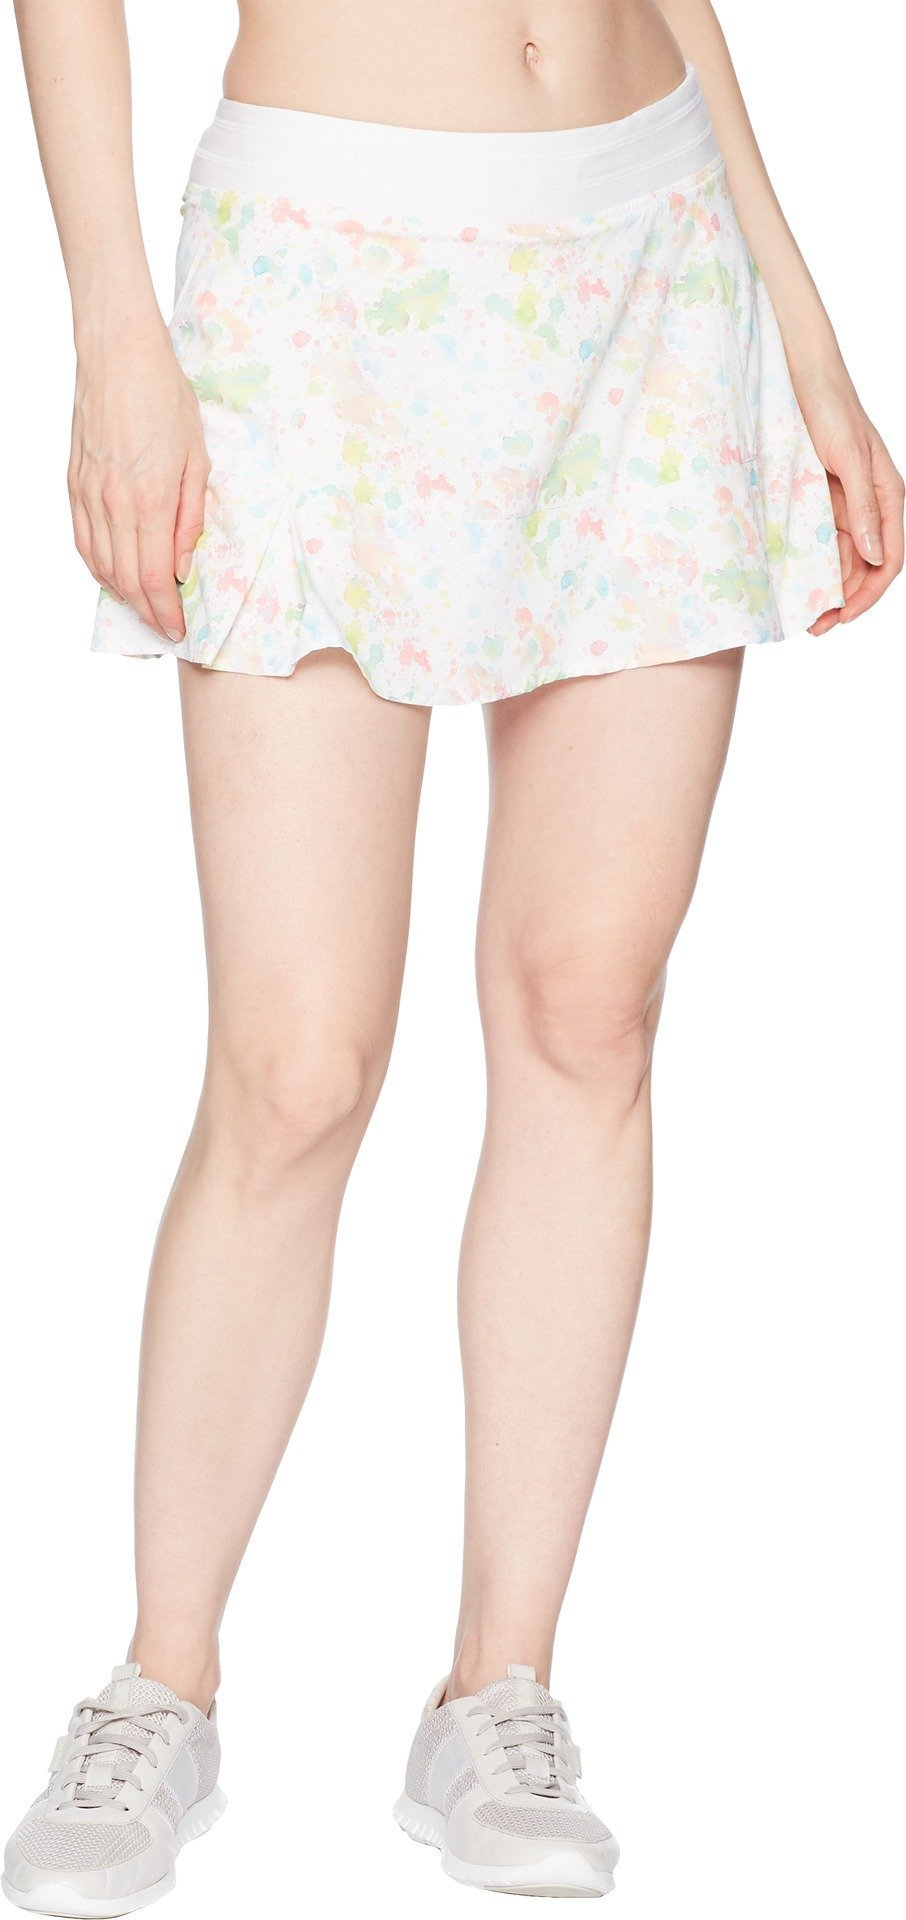 tasc Performance Rhythm Skirt, Splashy, X-Small by tasc Performance